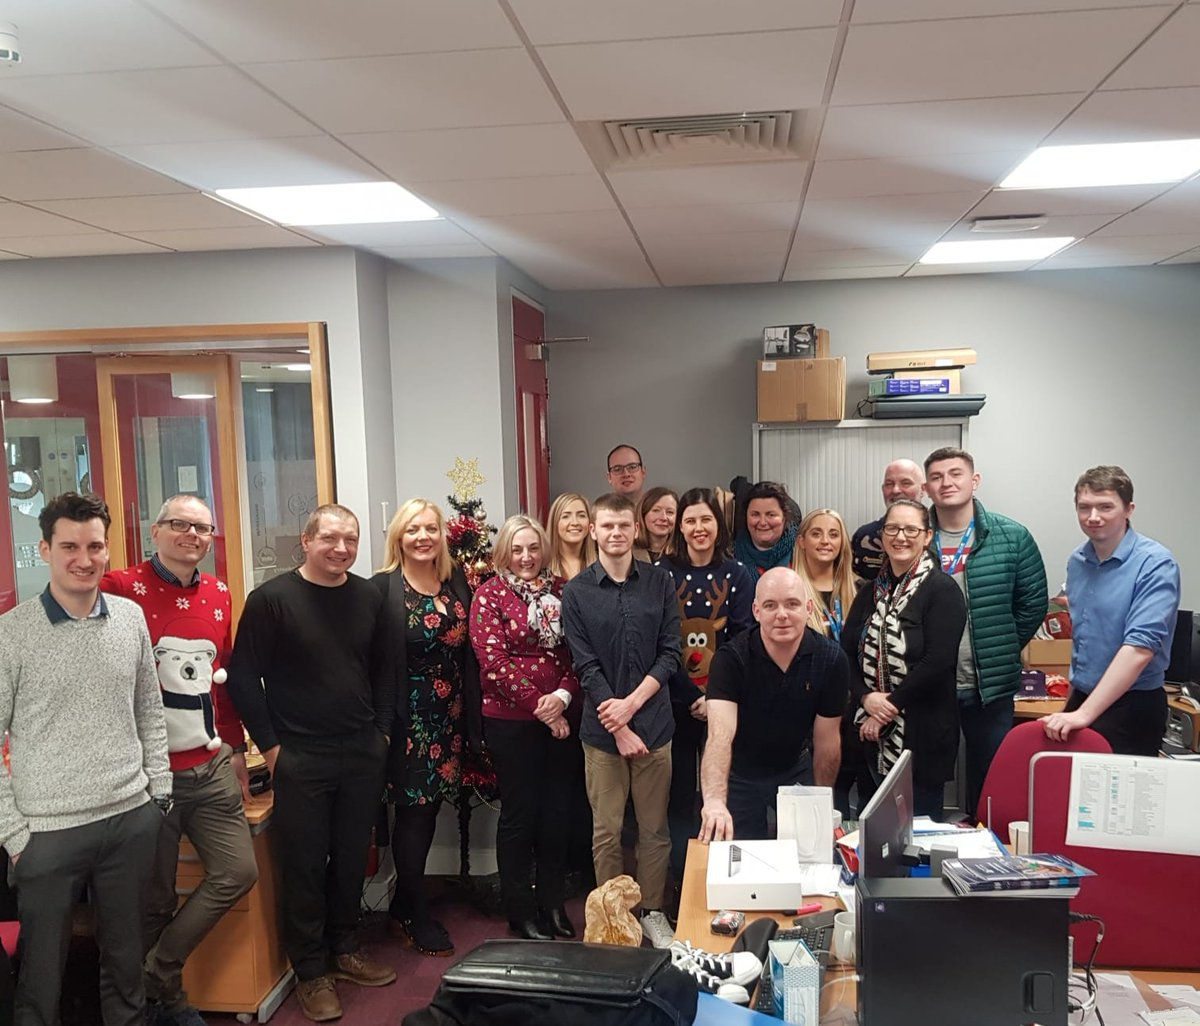 Merry Christmas and Happy New Year from the Business Support Centre team 🎅 🥳